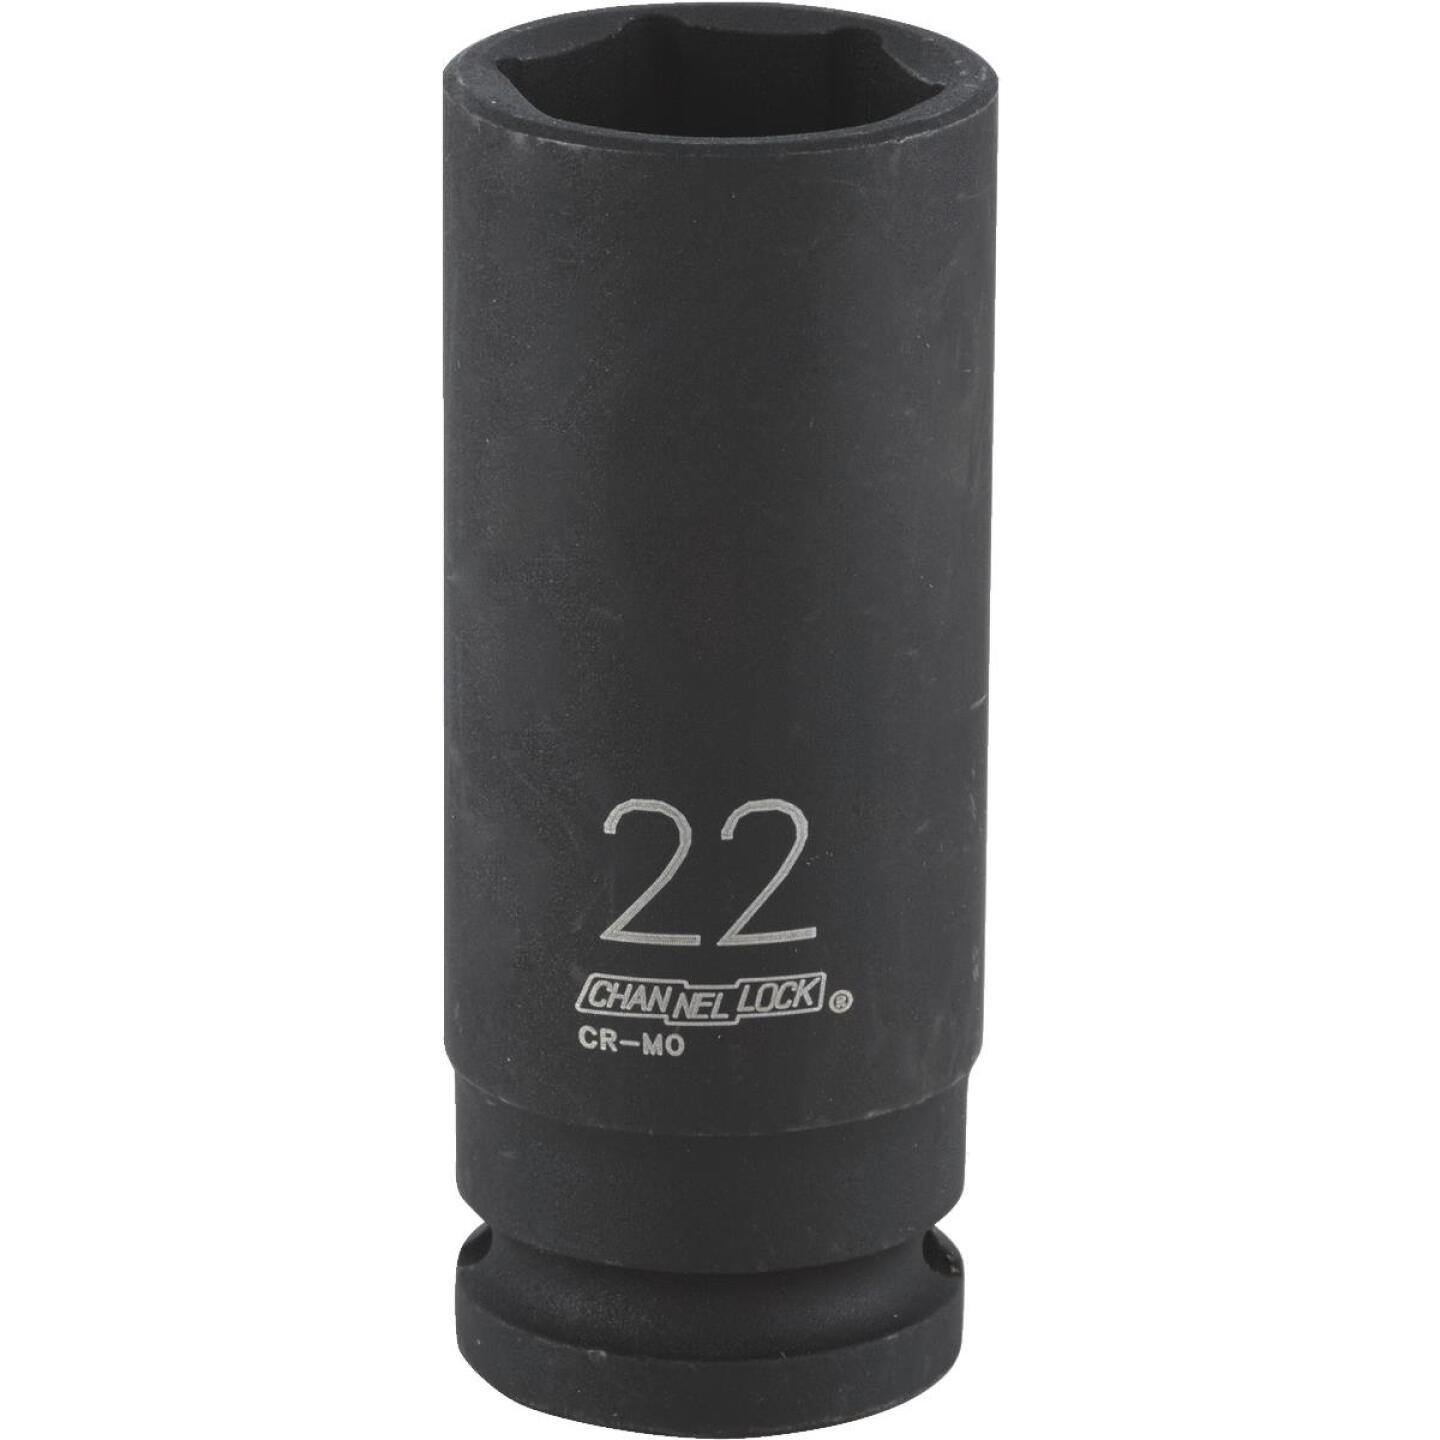 Channellock 1/2 In. Drive 22 mm 6-Point Deep Metric Impact Socket Image 1